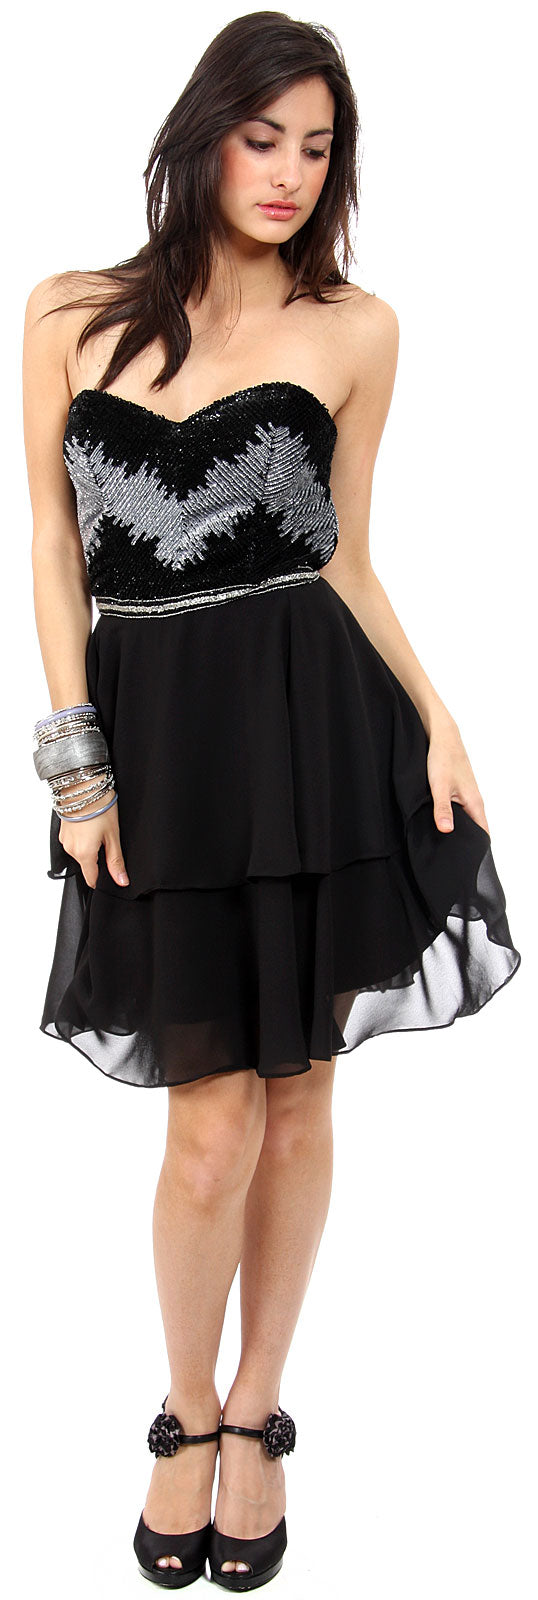 Main image of Strapless Ruffled Skirt Sequined Bust Short Prom Dress